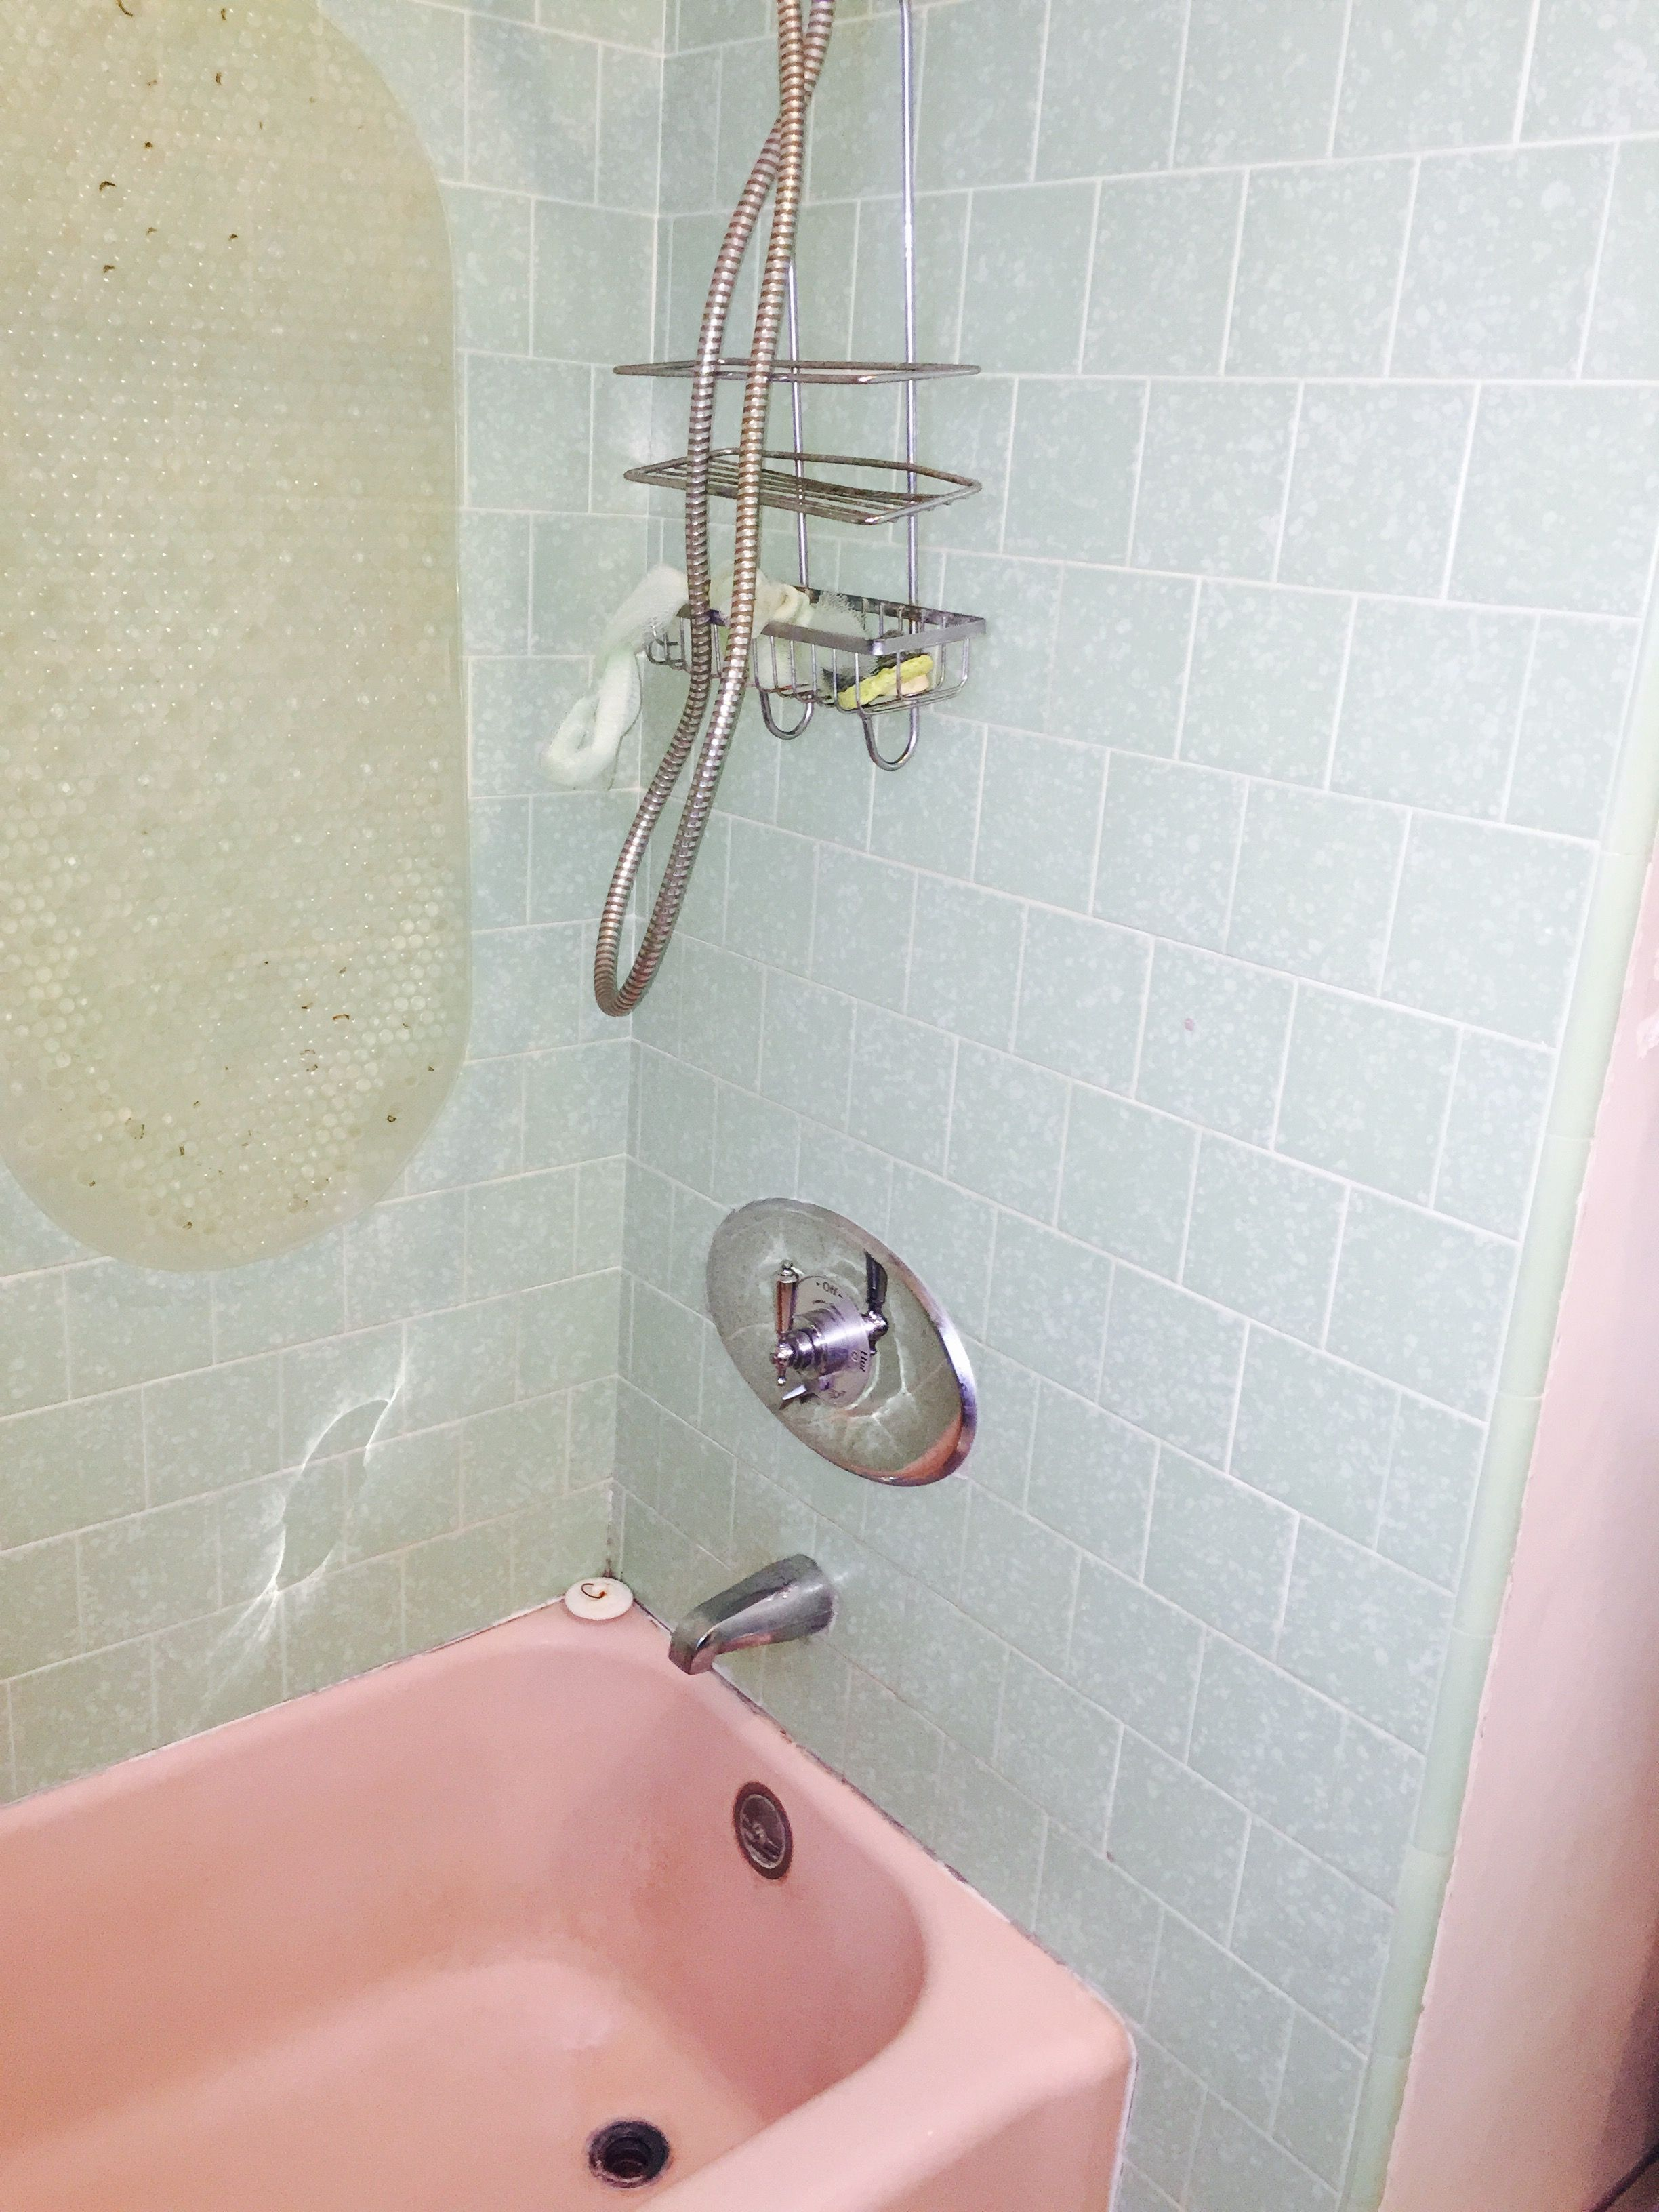 Old Pink Tub Tile And Faucets Pink Tub Bathroom Faucets Tub Tile